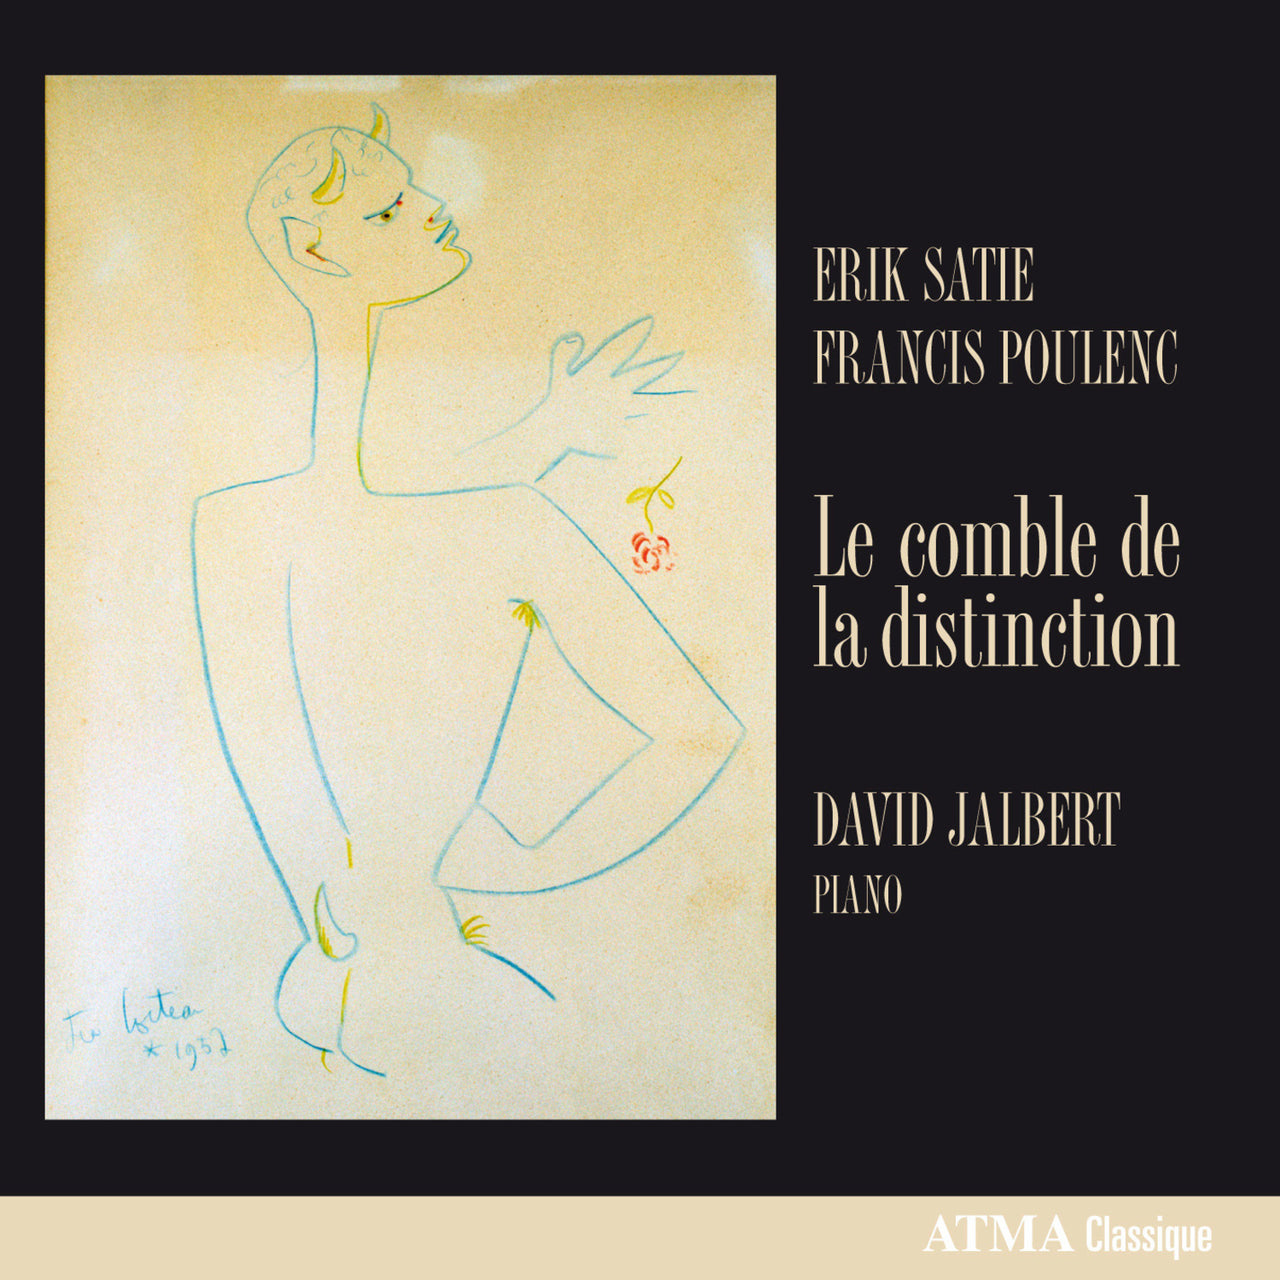 Jalbert, David : Le comble de la distinction: Fran